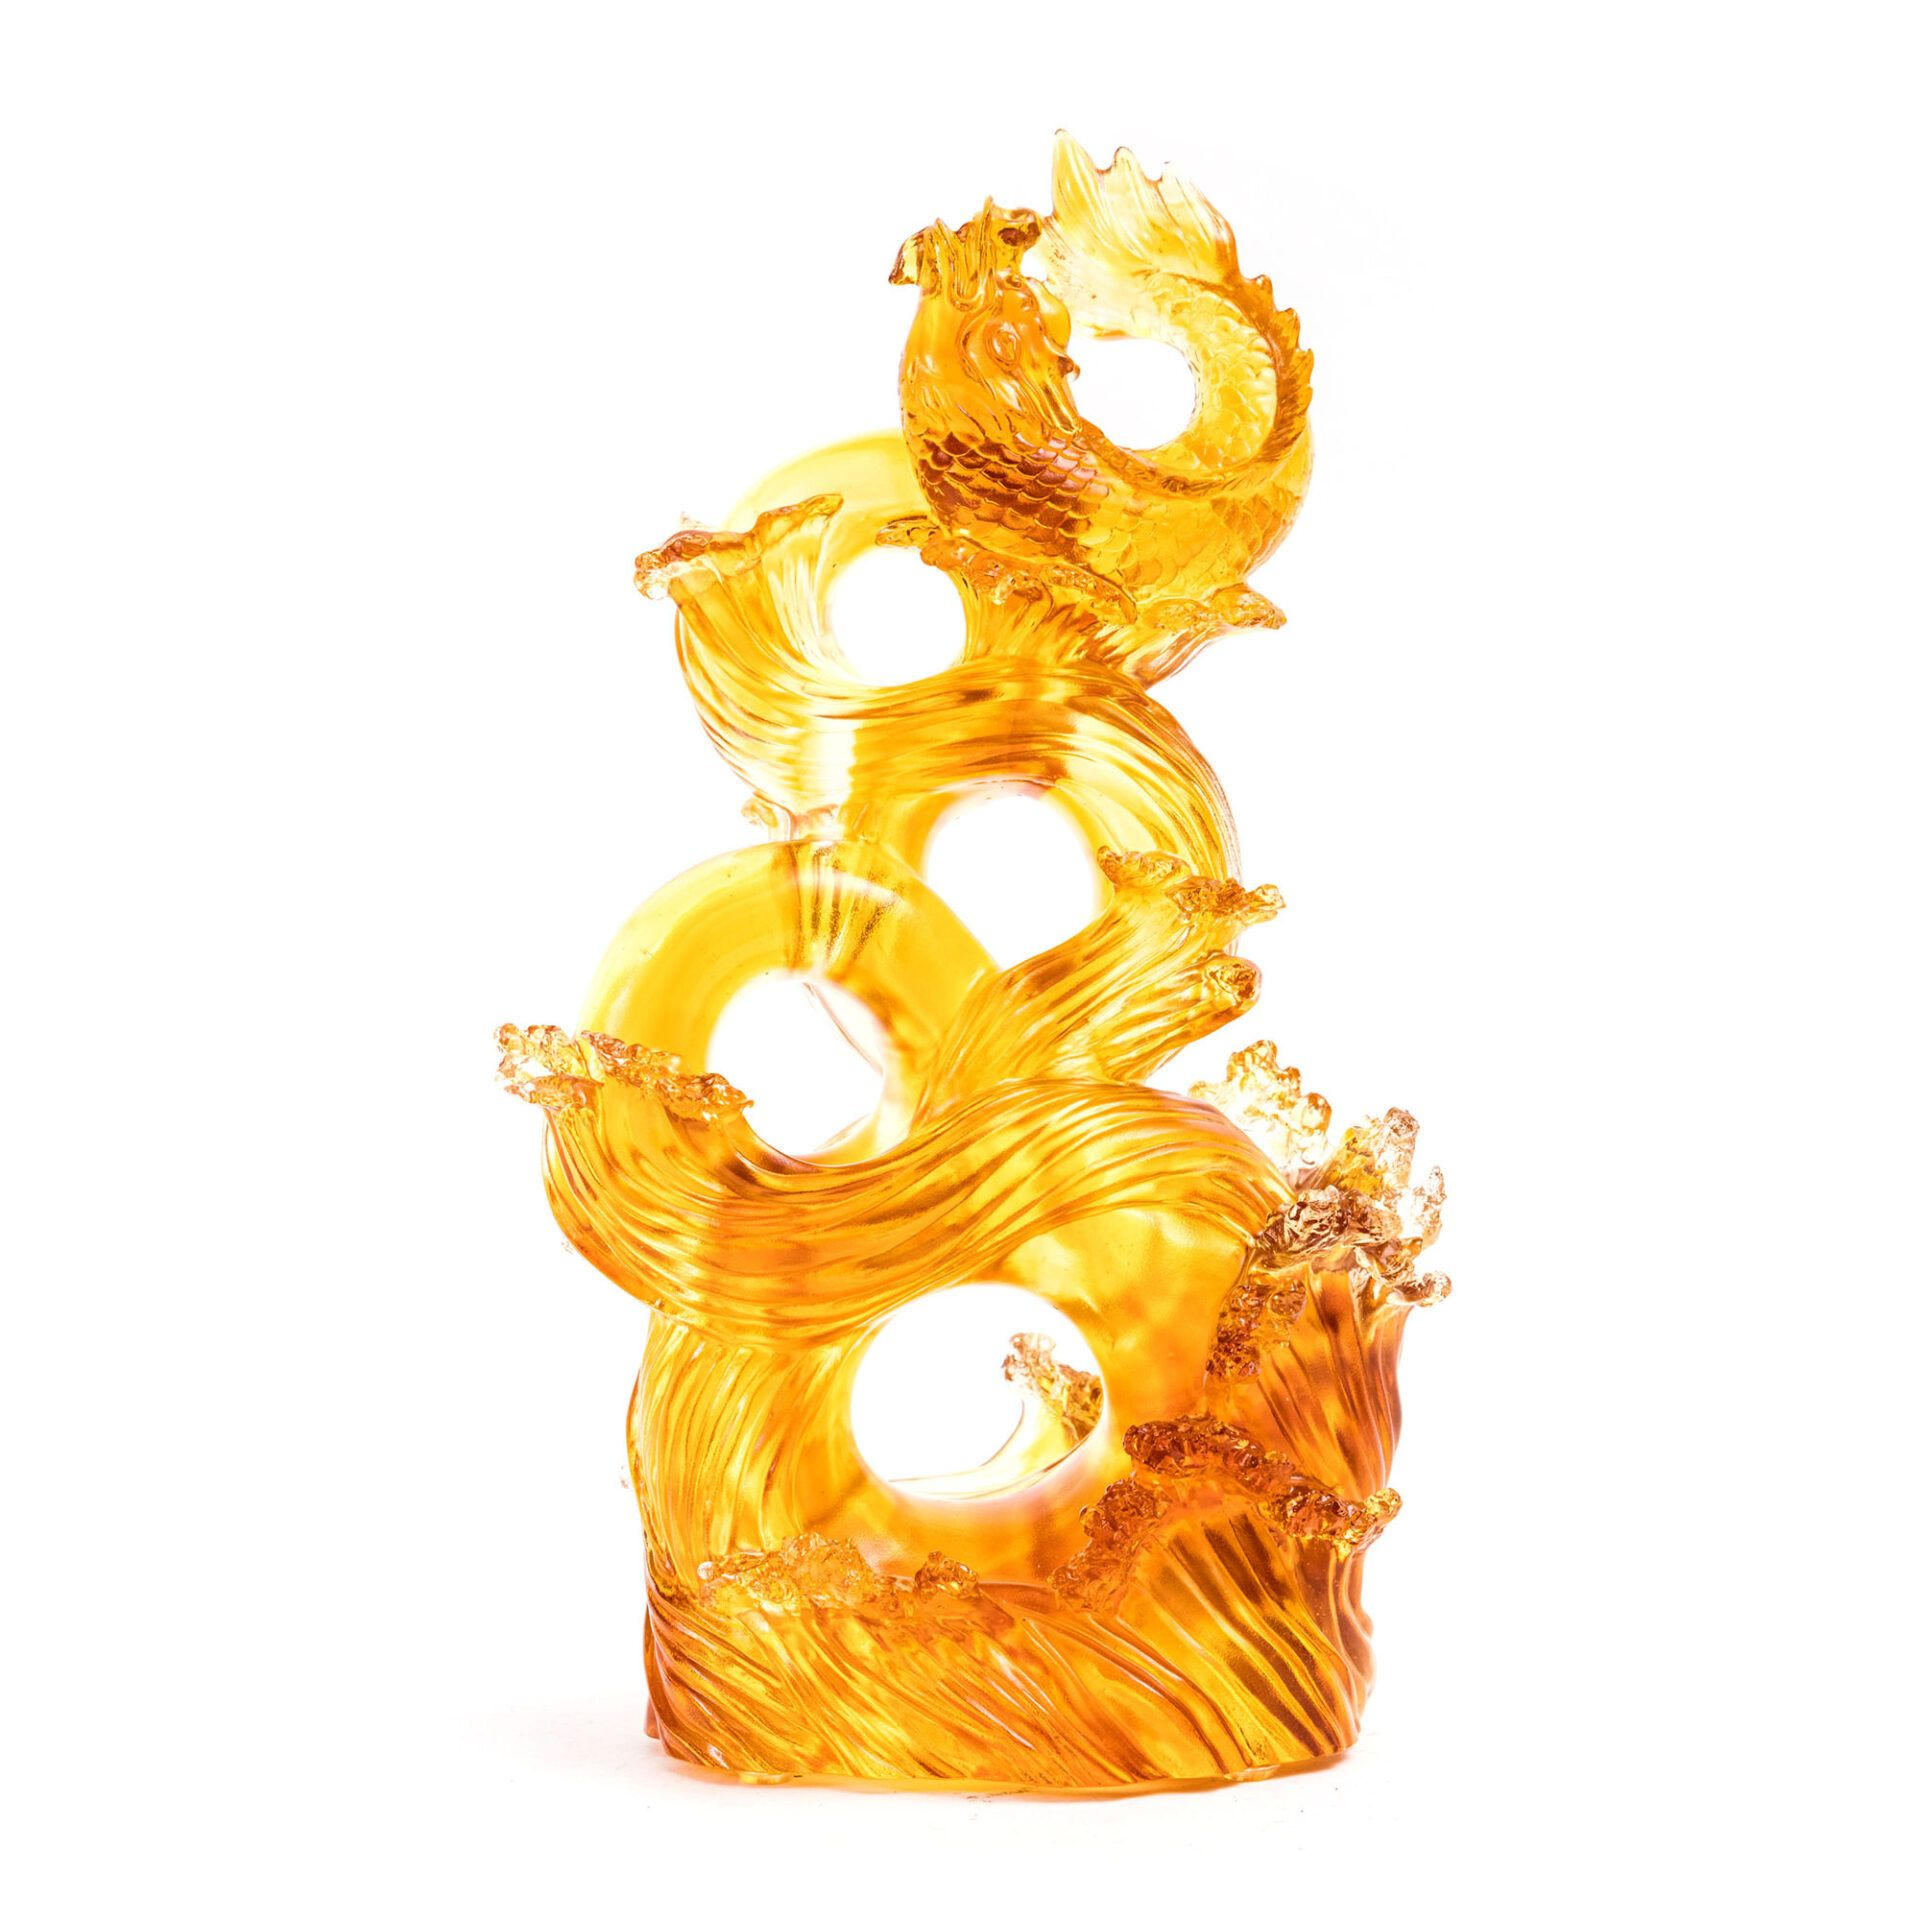 LIULIGONGFANG, Contemporary Glass Sculpture